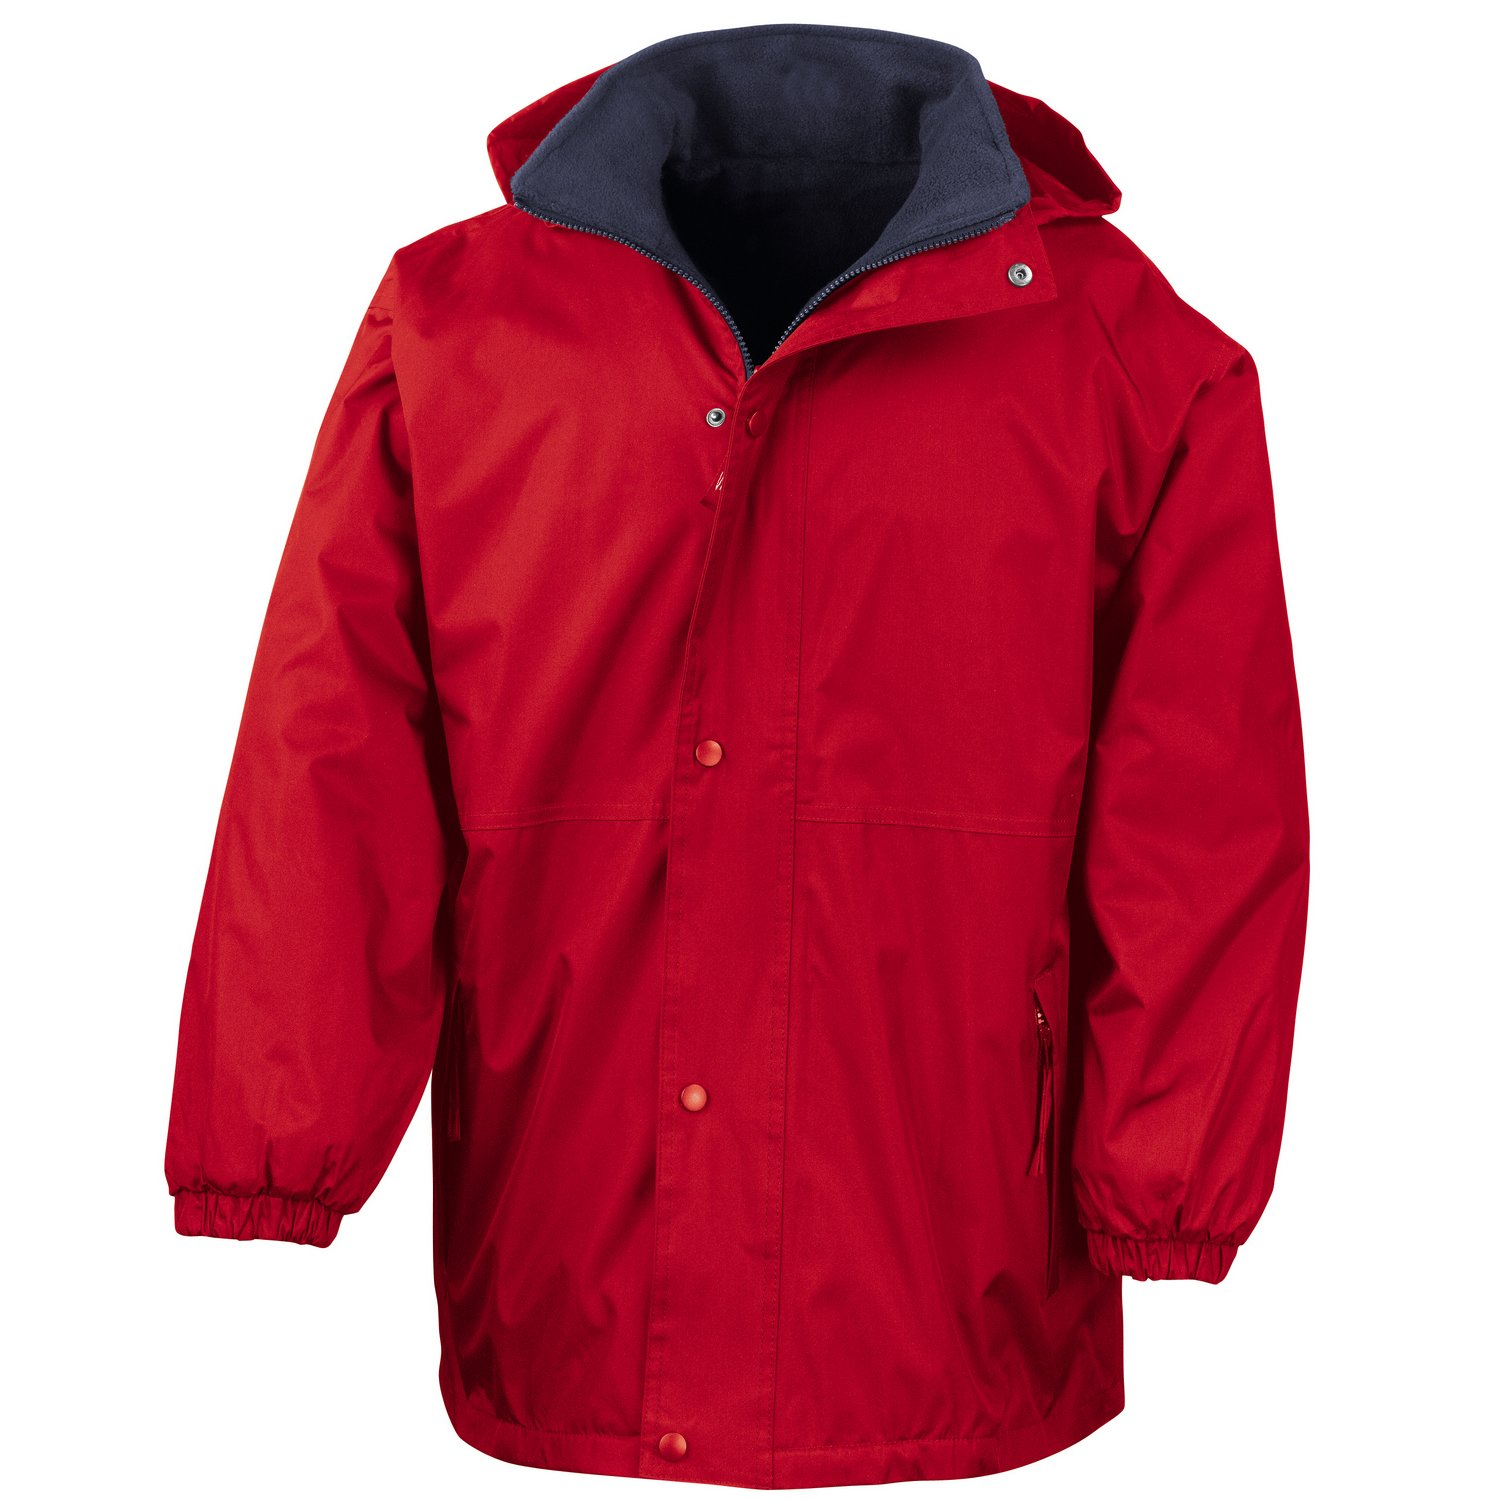 Result Reversible StormDri 4000 fleece jacket Red/ Navy 2XL